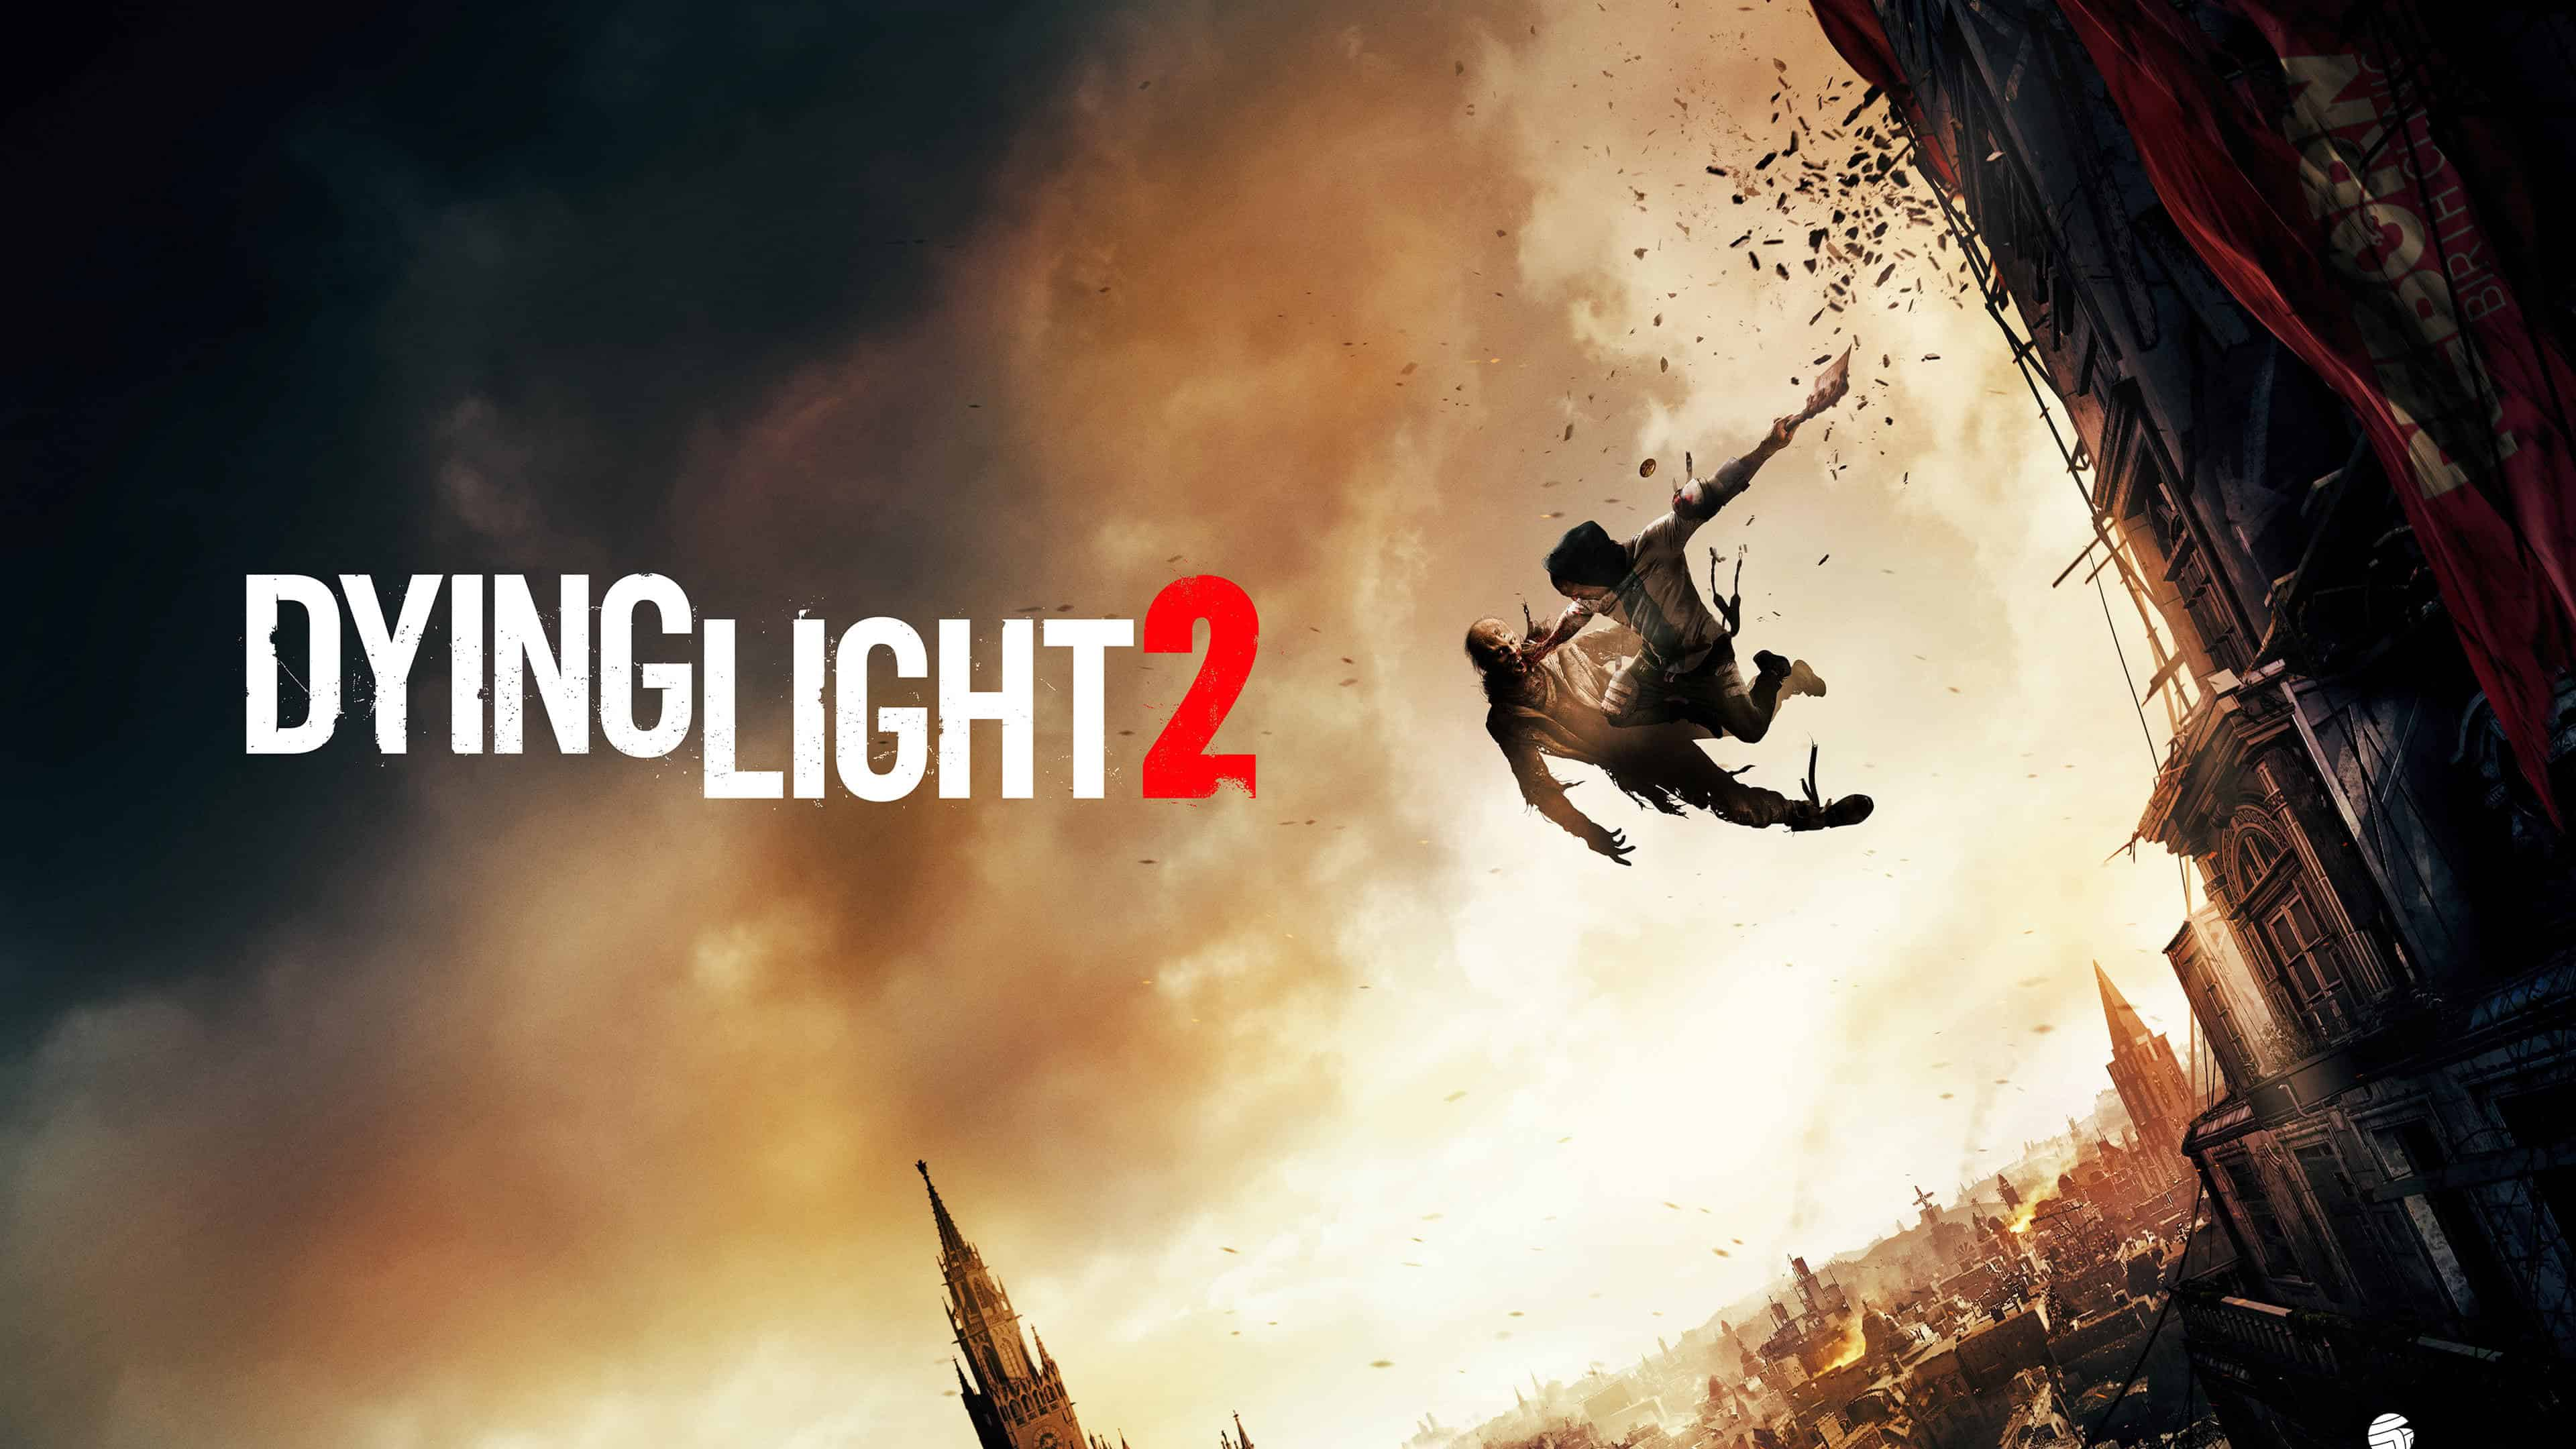 dying light 2 uhd 4k wallpaper